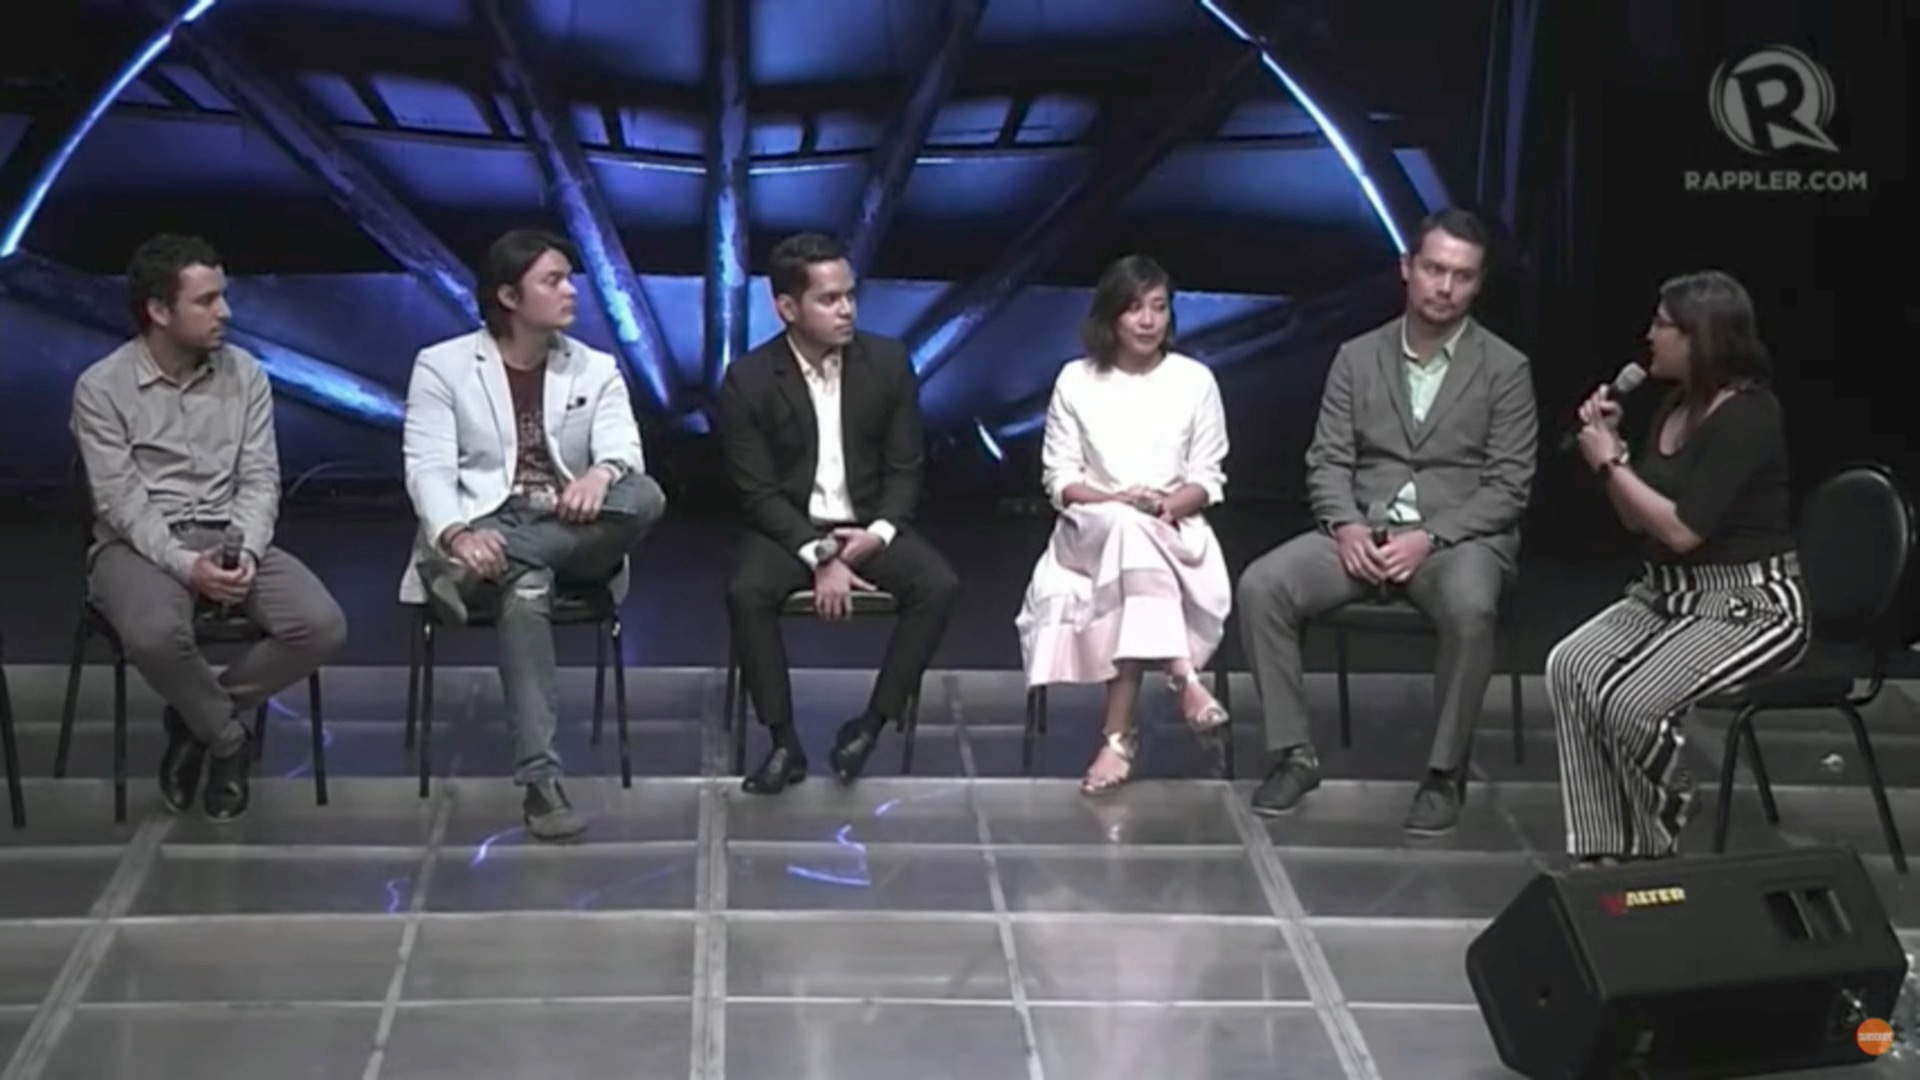 AWARENESS. Panelists of the Agos Summit on Disaster Preparedness talk about harnessing pop culture and social media to raise awareness on disaster risk reduction and climate action. Screenshot from Rappler